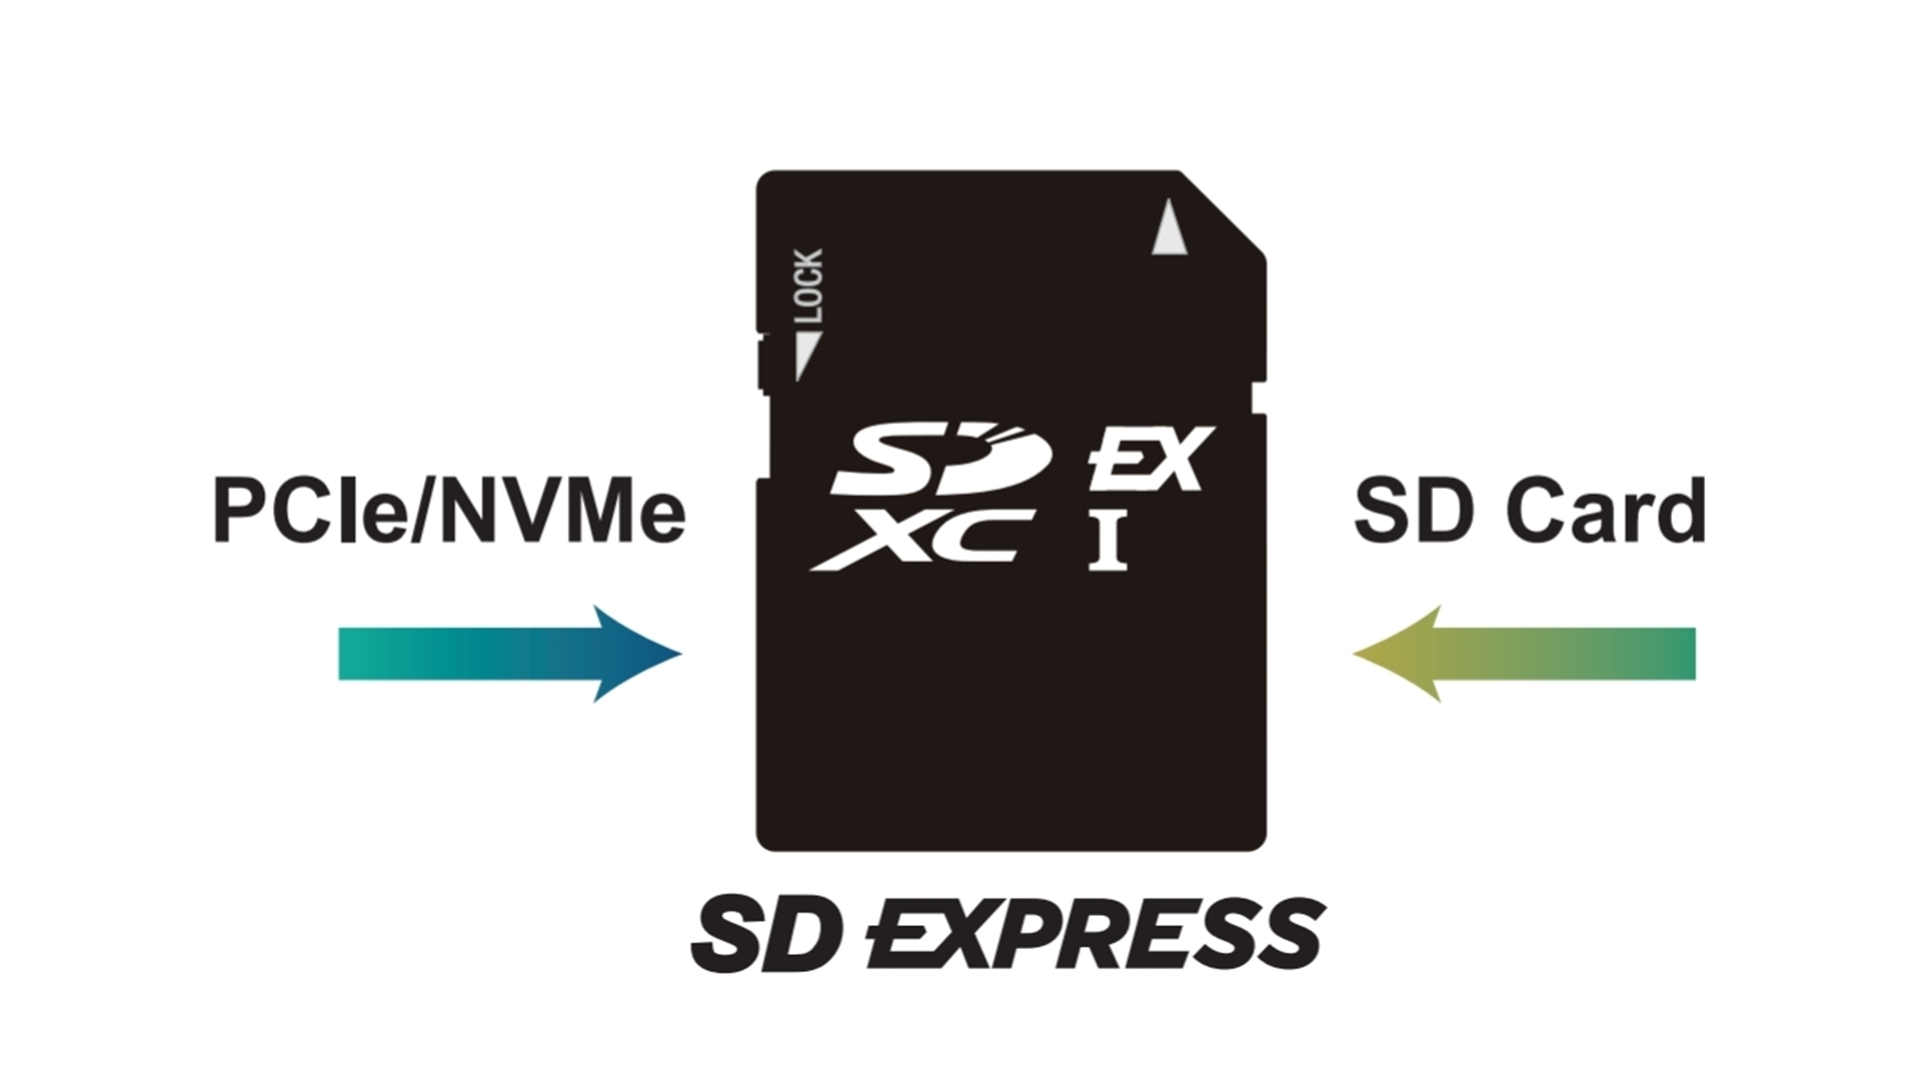 SD Express Cards: Explained